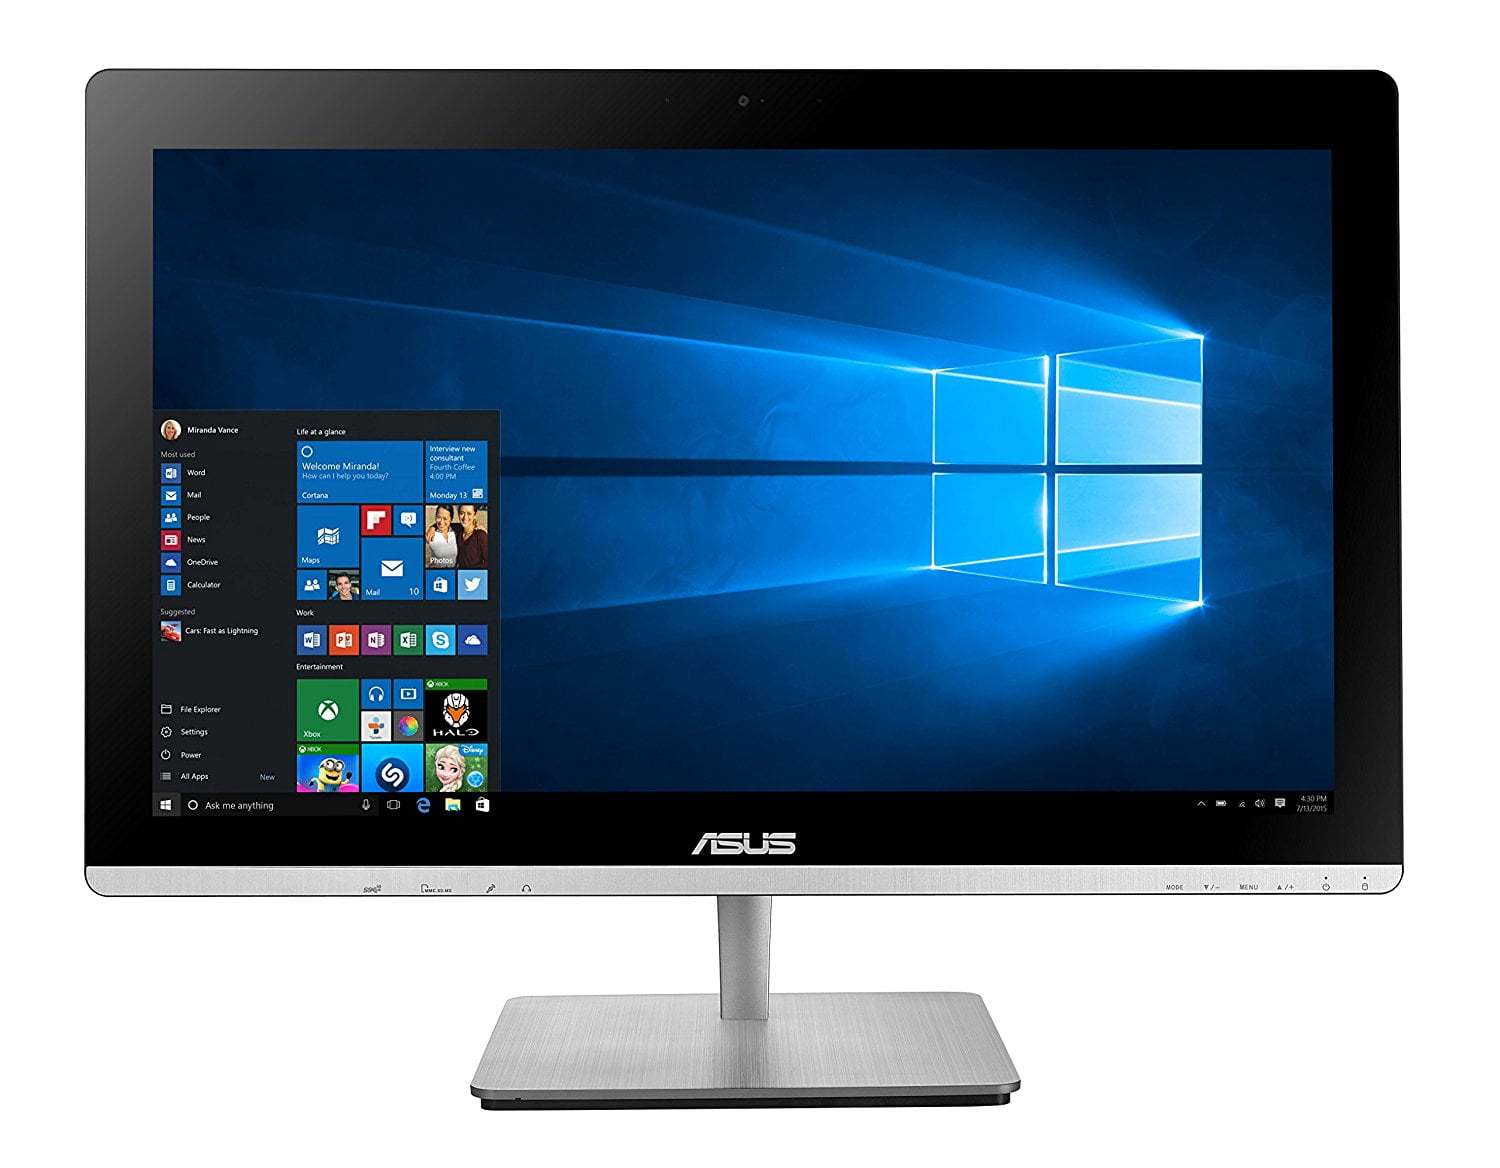 asus all in one pc manual